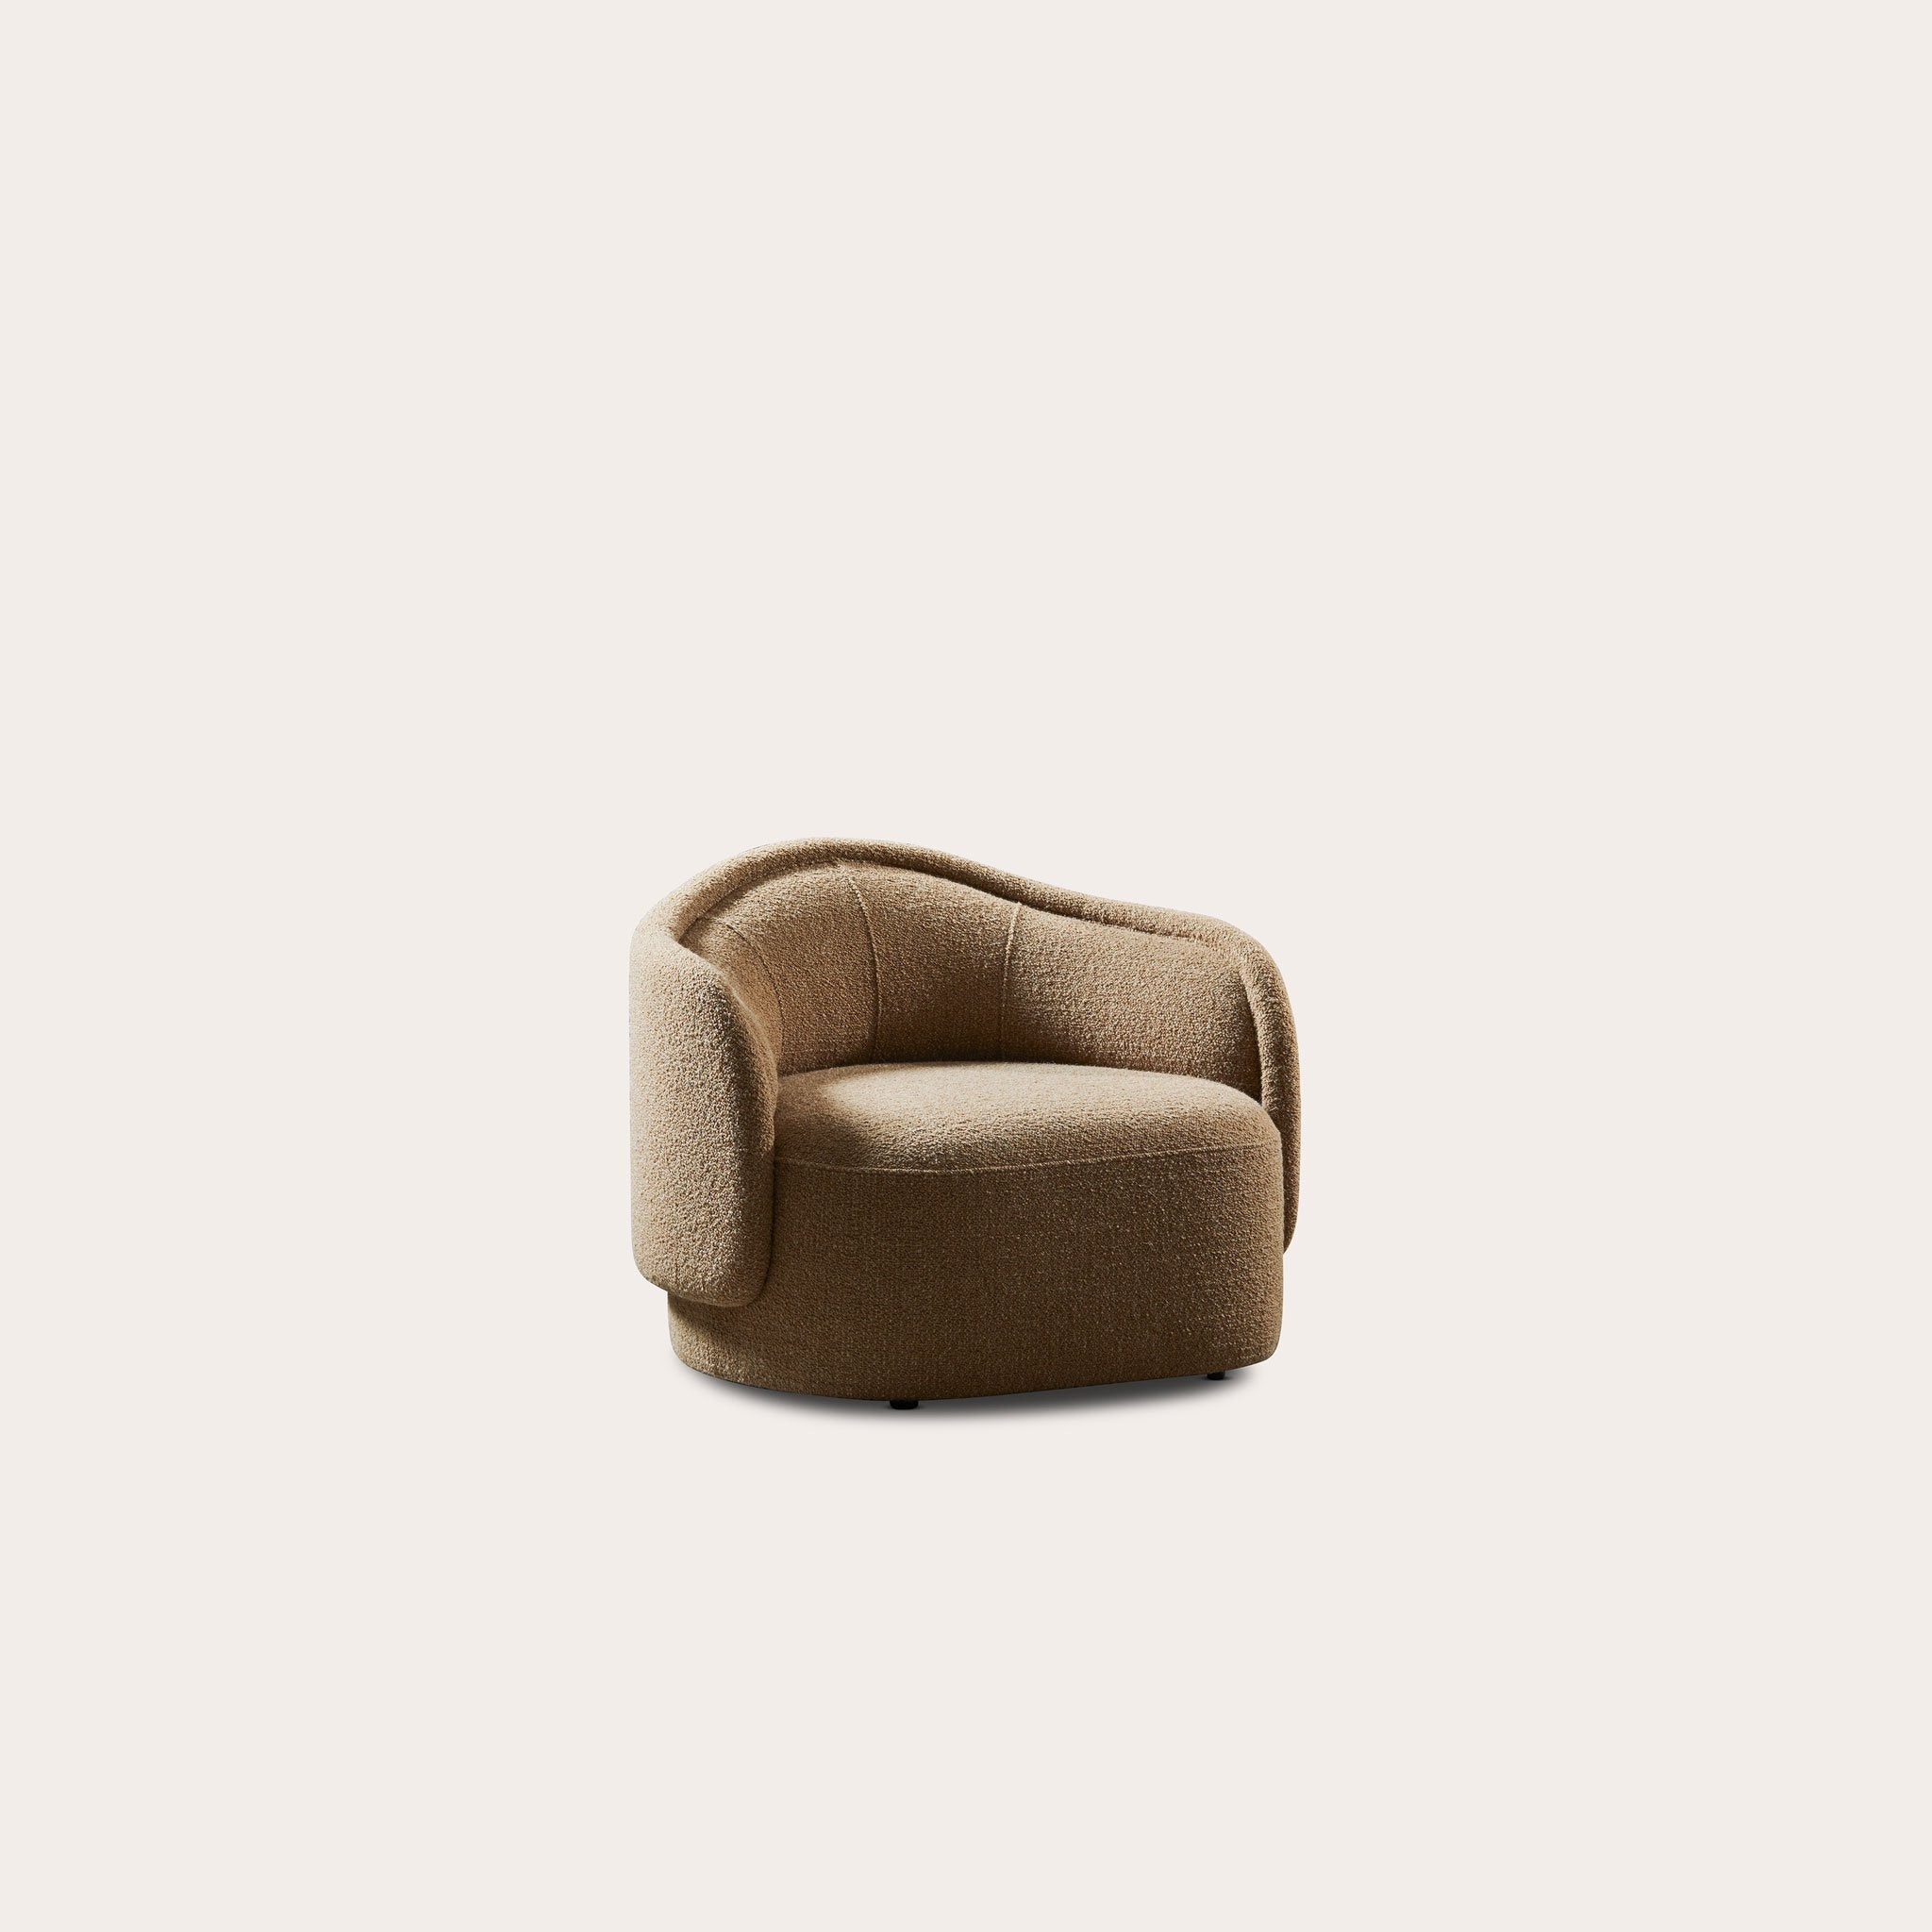 PIA Seating Christophe Delcourt Designer Furniture Sku: 765-240-10008